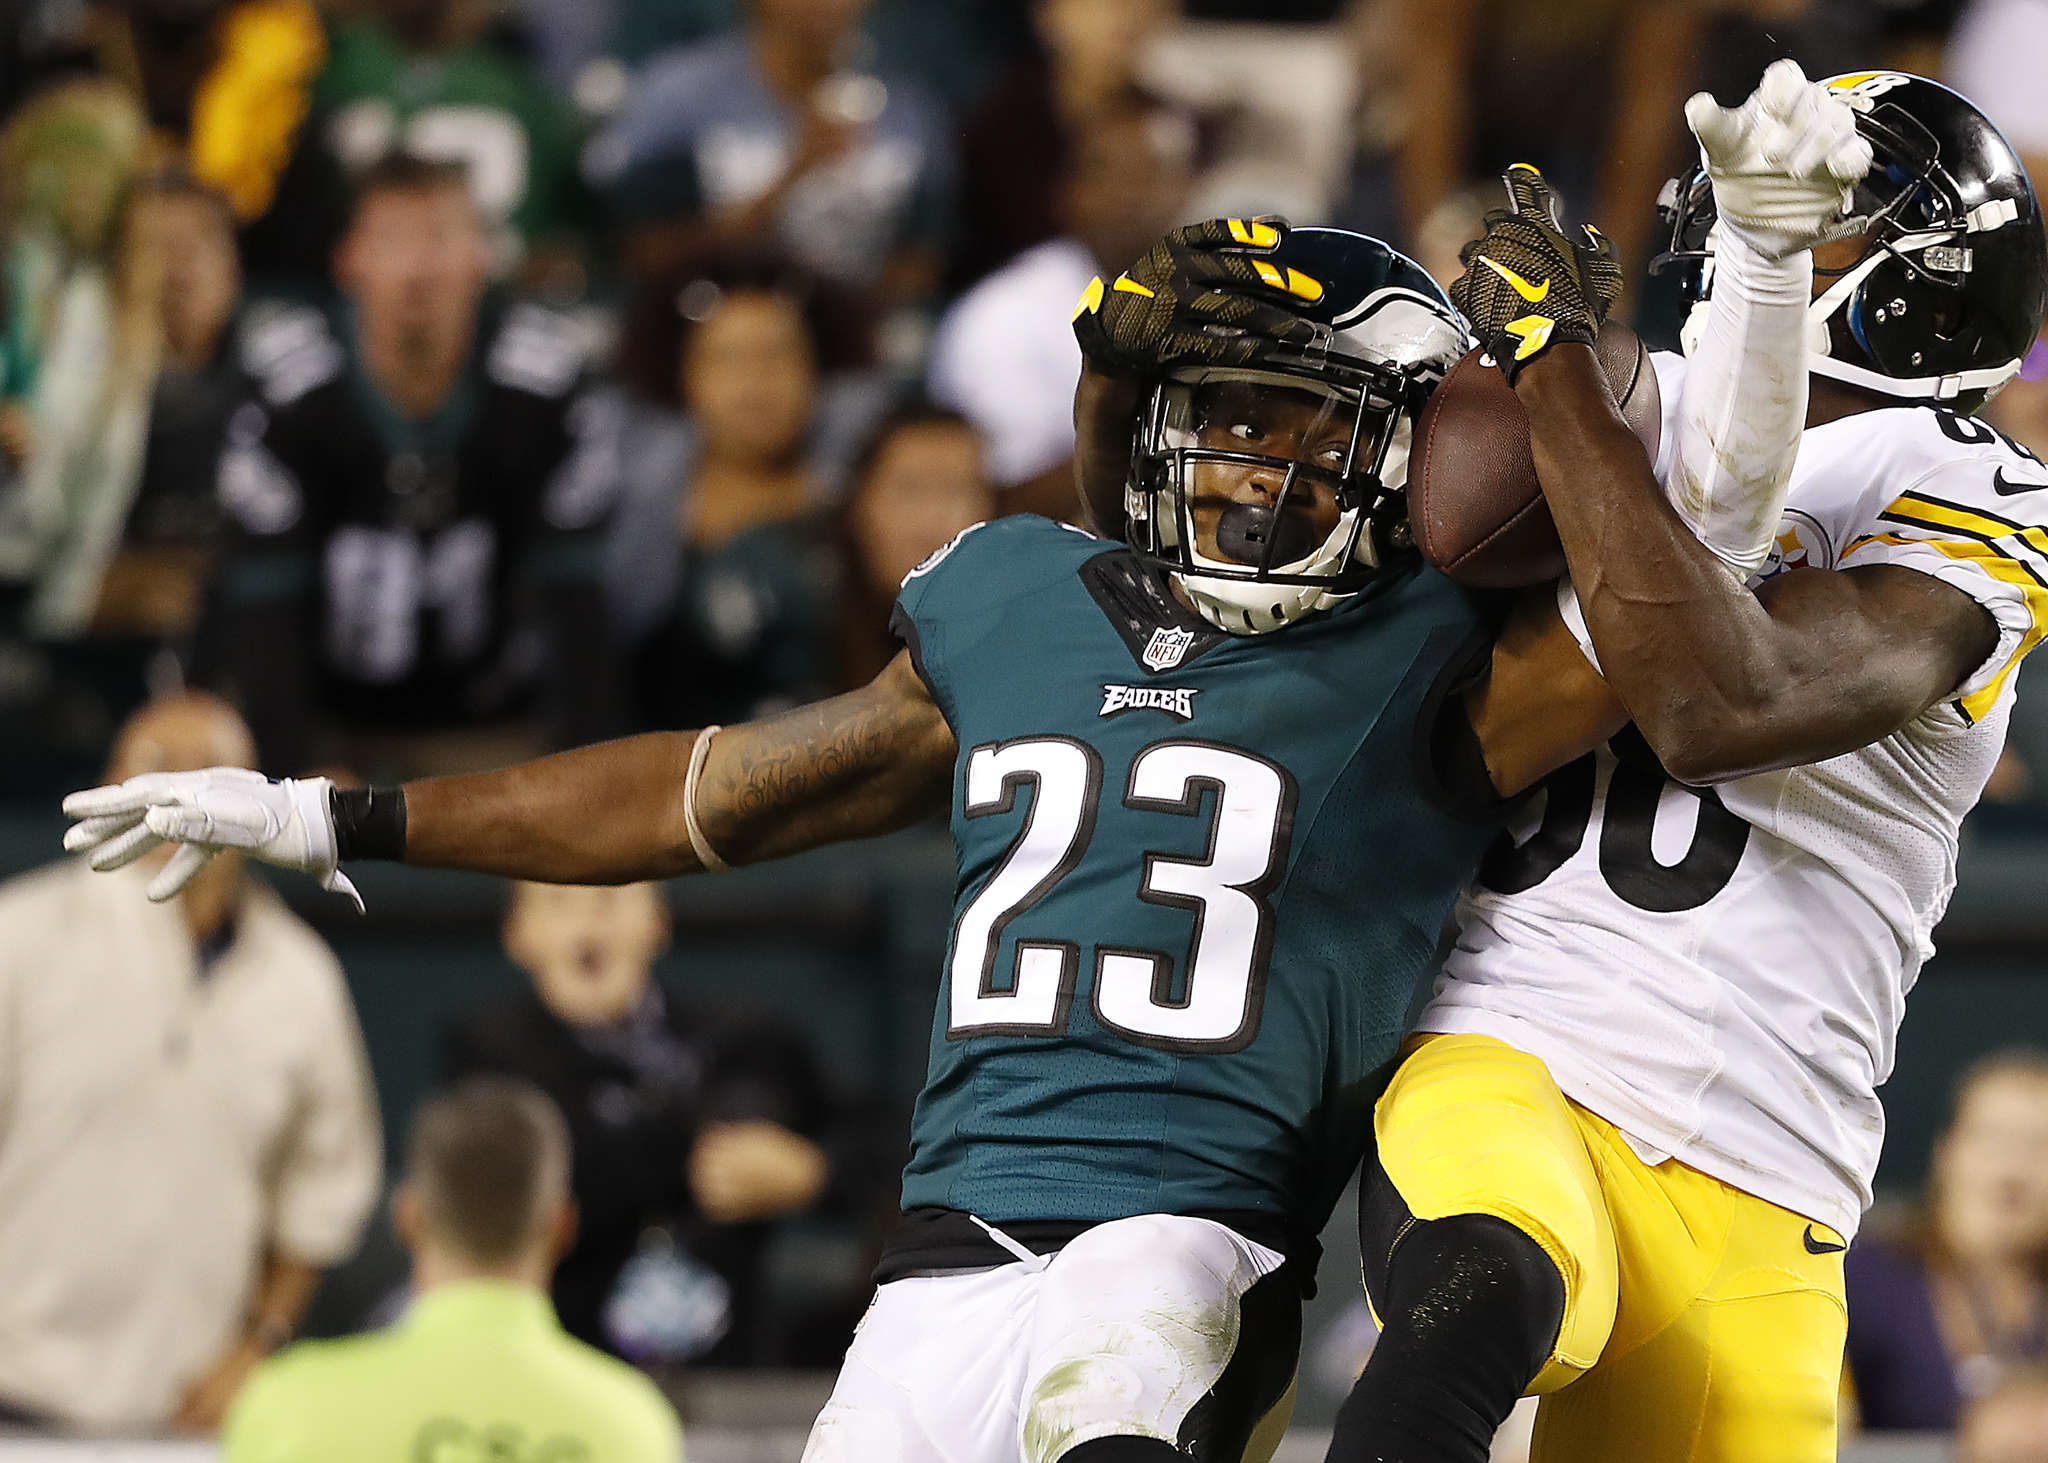 Rodney McLeod intercepts pass for Darrius Heyward-Bay in end zone in fourth quarter.